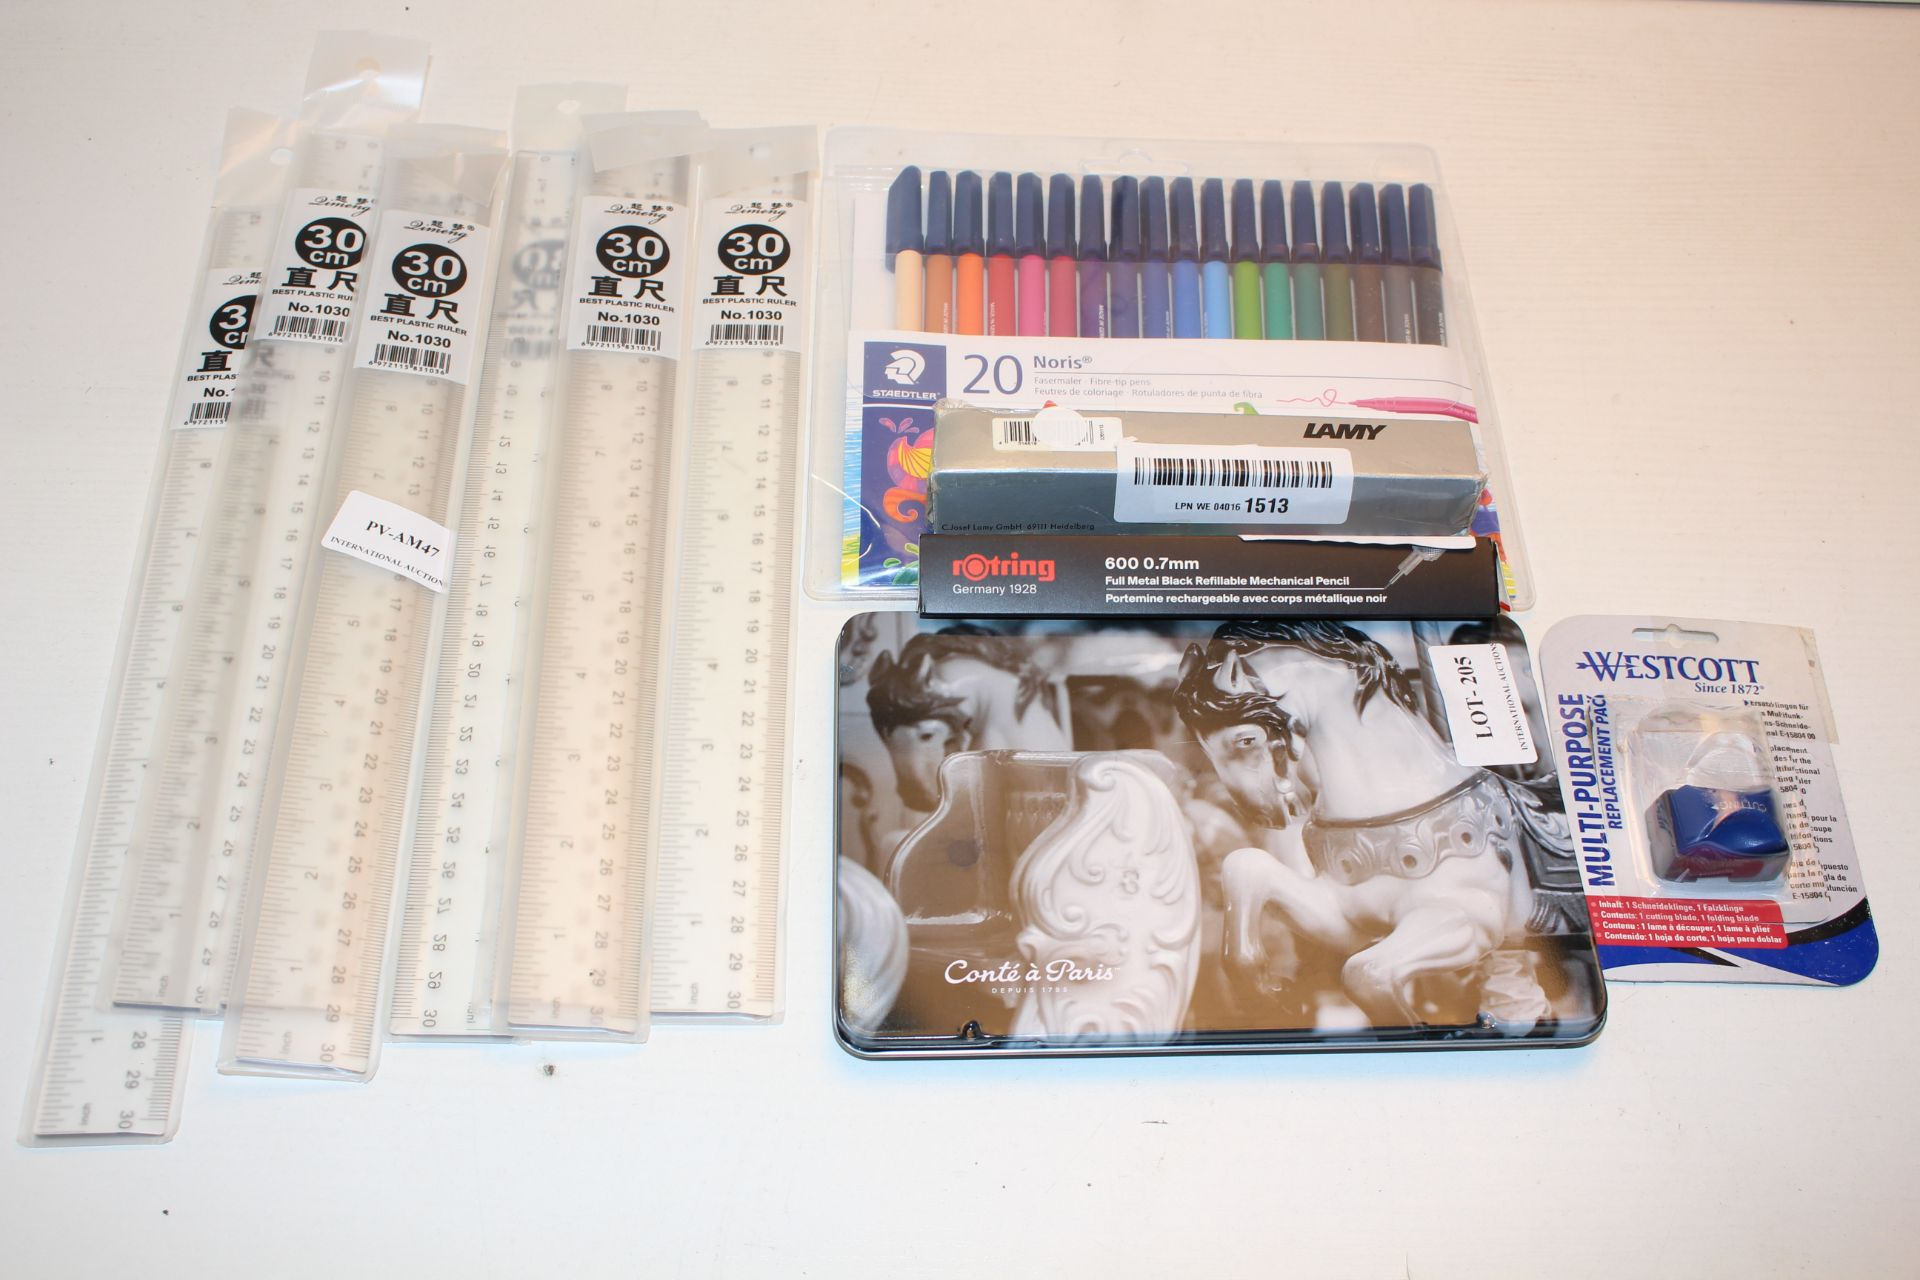 ASSORTED STATIONARY ITEMS TO INCLUDE CONTE DE PARIS PENCILS & OTHER (IMAGE DEPICTS STOCK)Condition